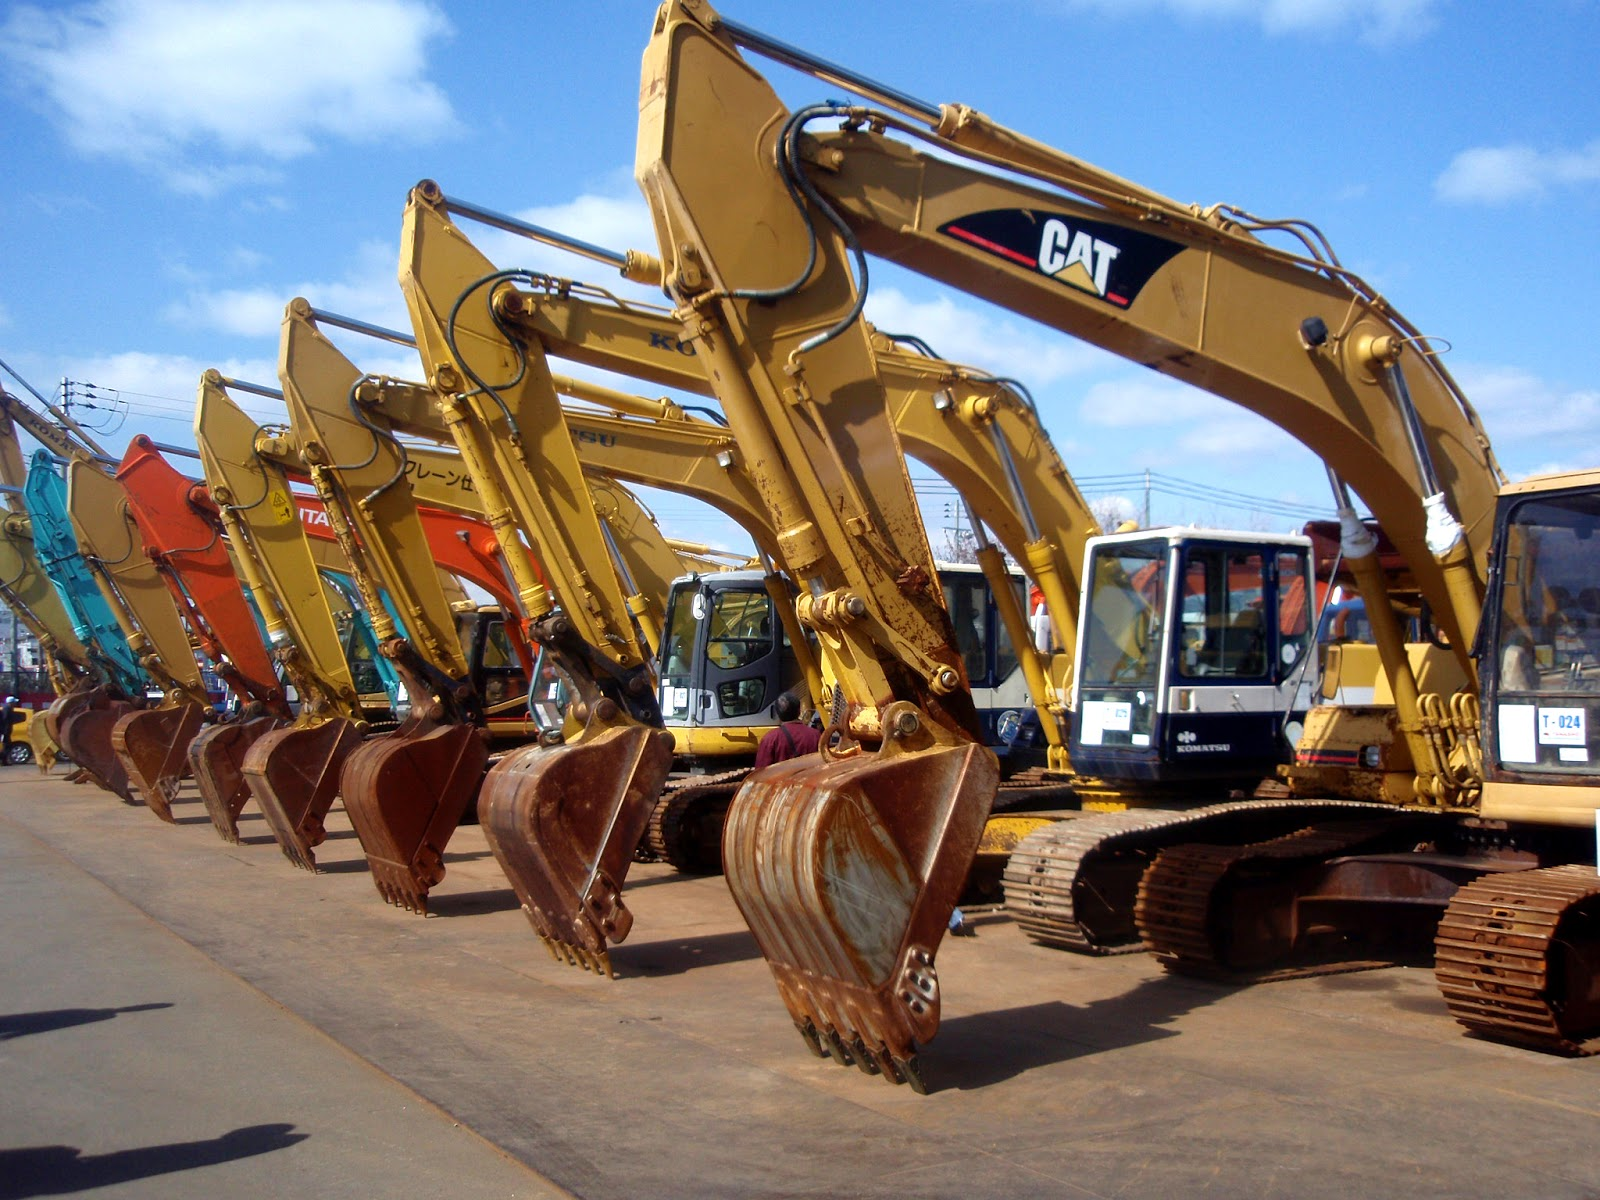 Construction Machinery Information: When Is the Right Time to Get It